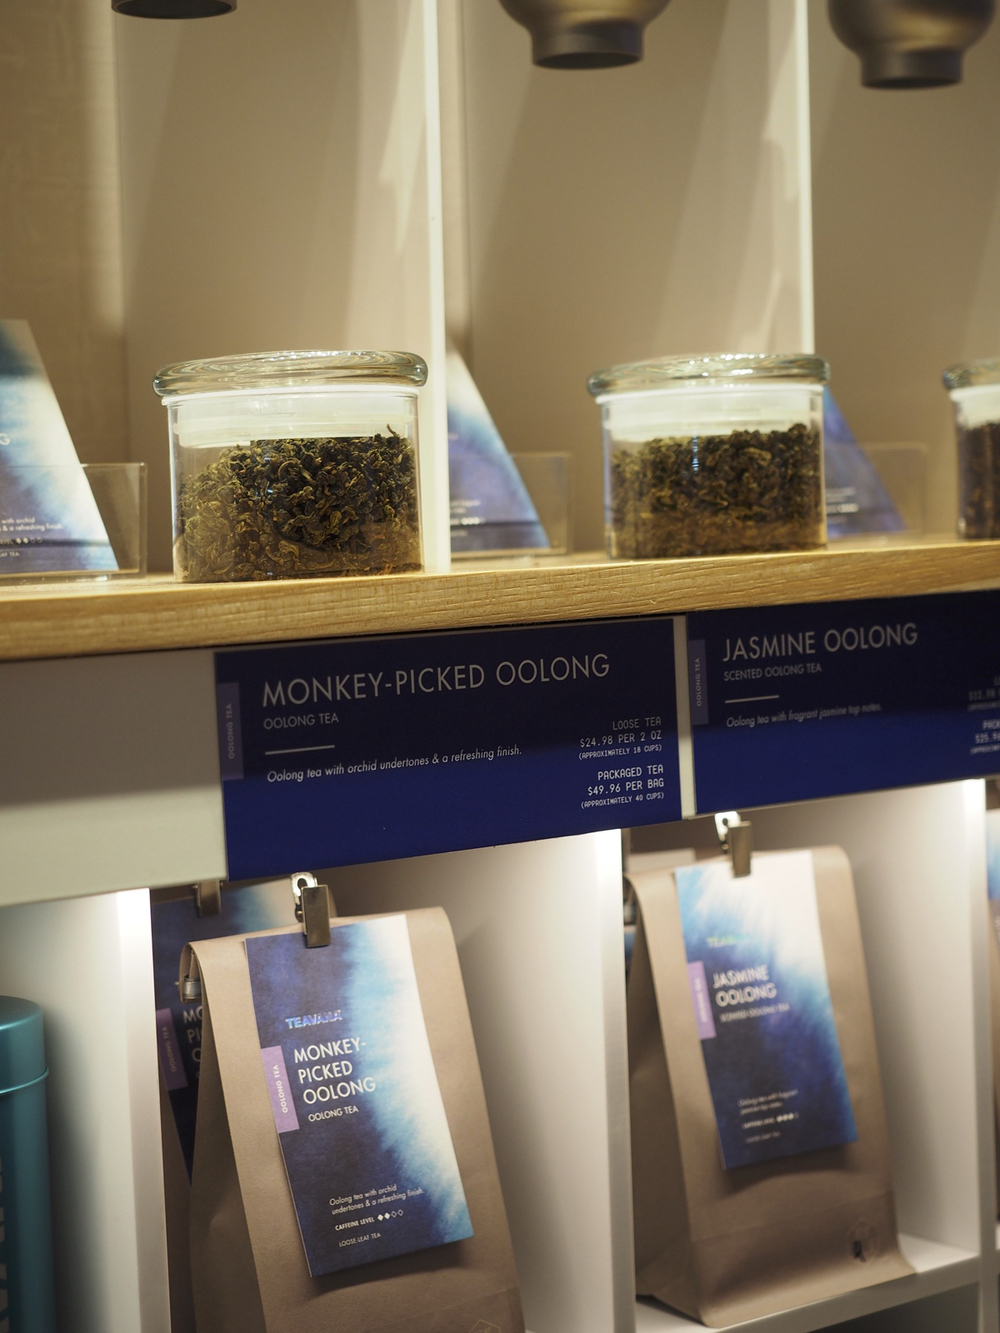 teavana29 grab and go 4 ounce bag tea 10Nov15.jpg